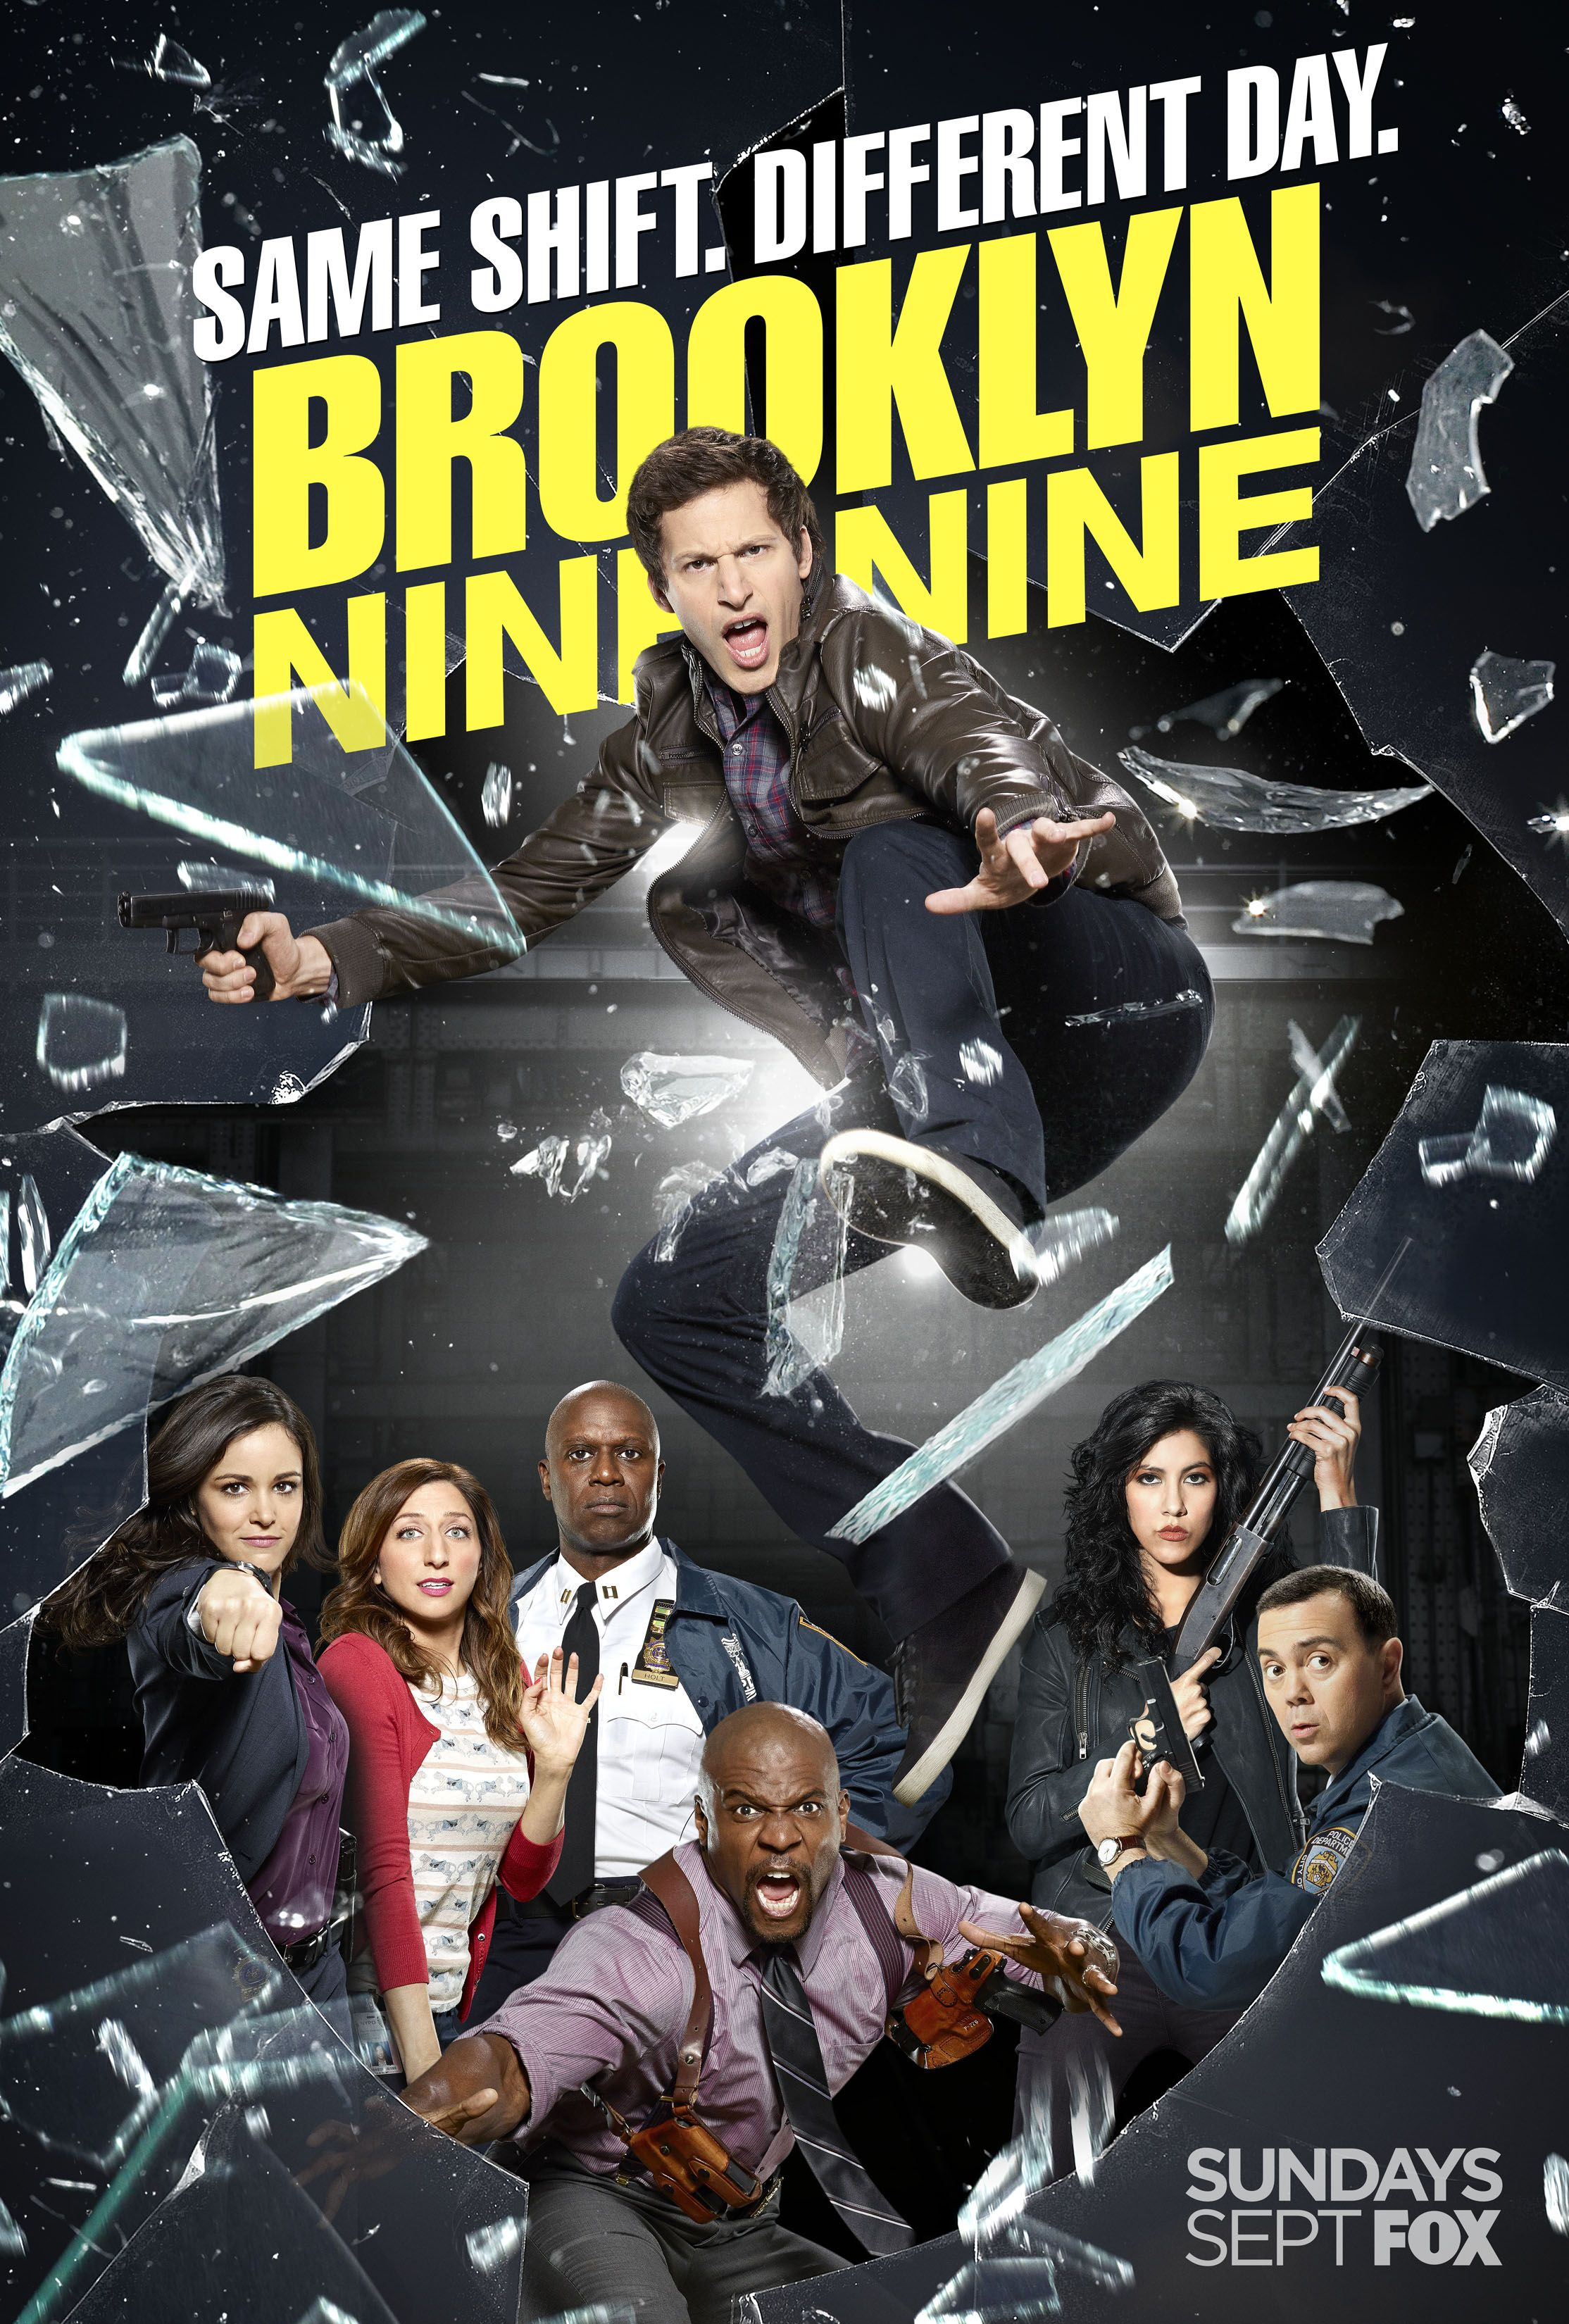 Nine Different Ways You Can Put Your Goals In Writing: Brooklyn Nine-Nine Season 2 Poster Promises Same Shift On